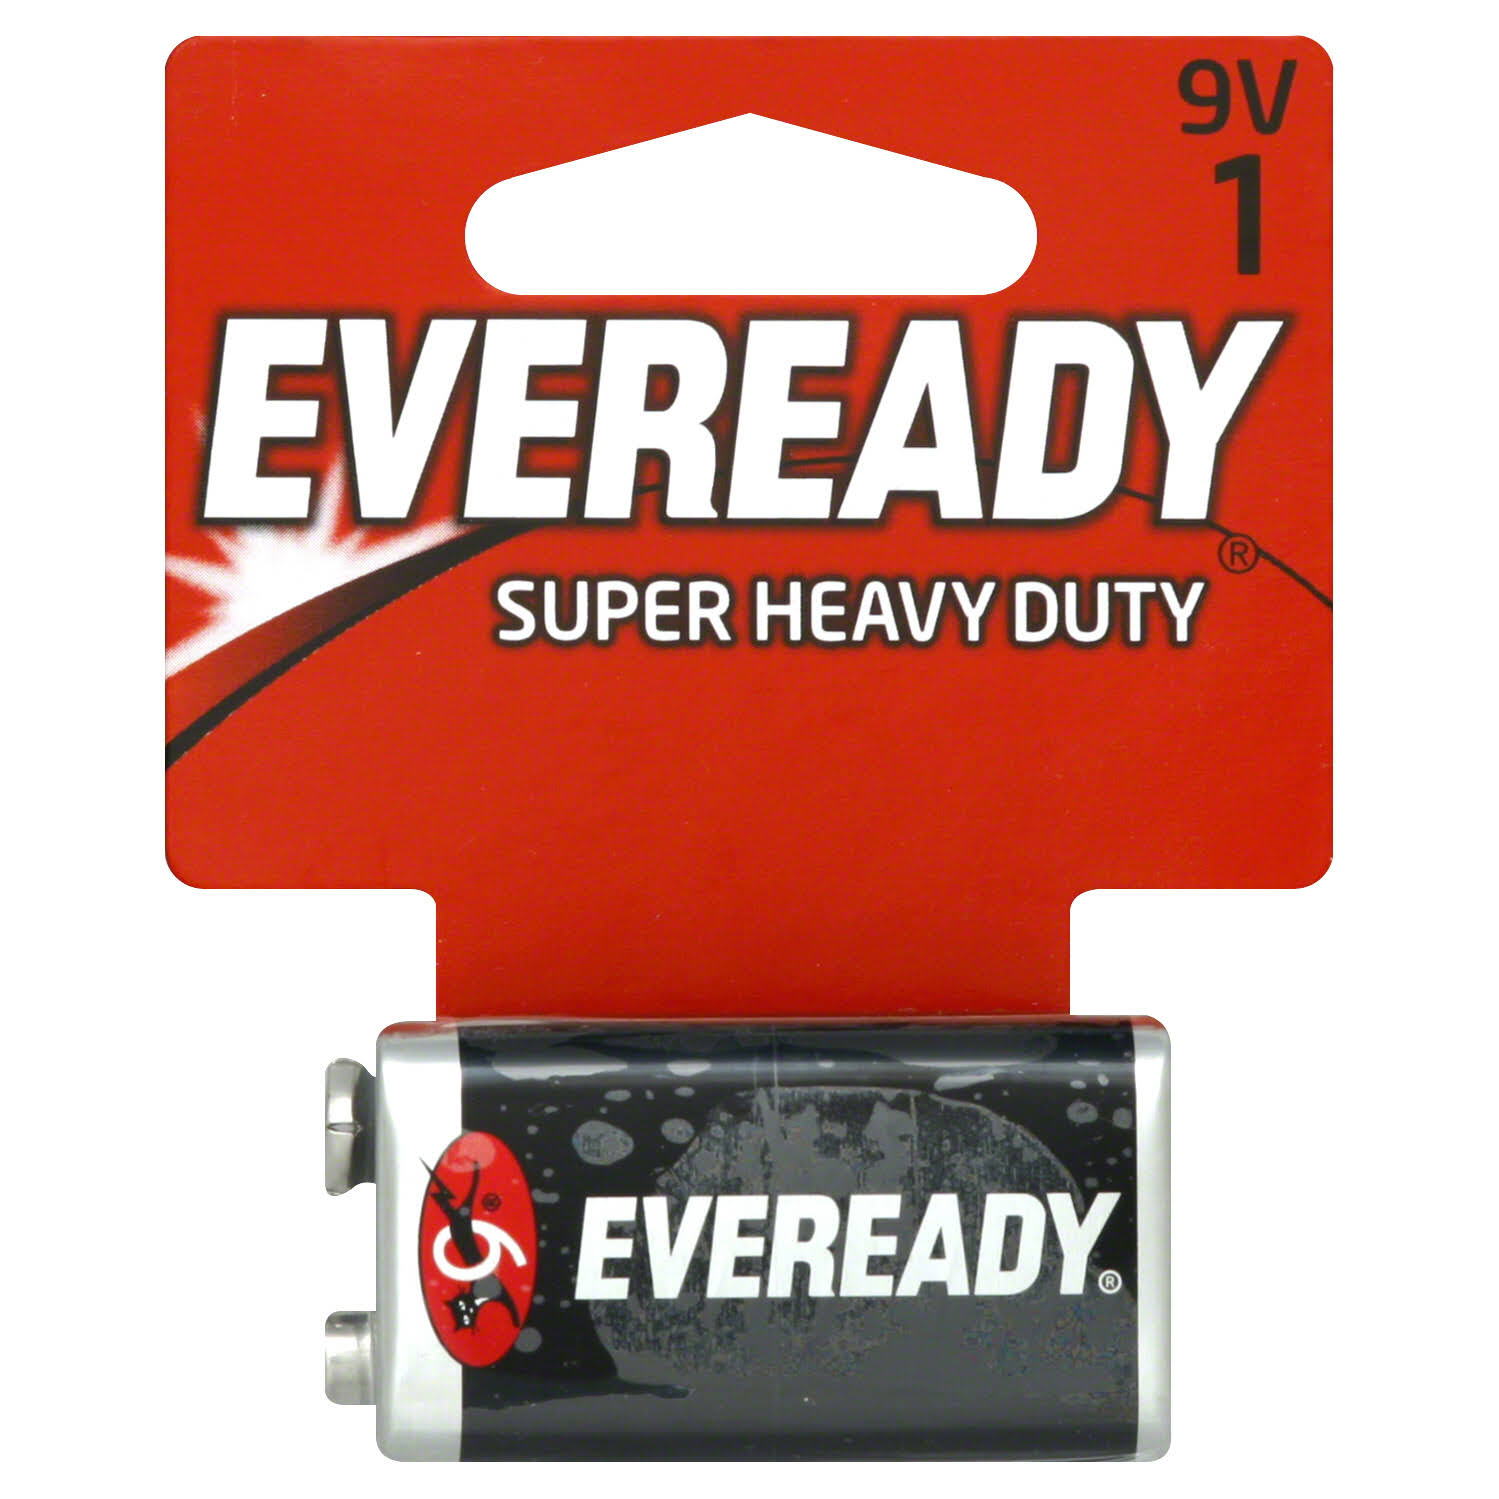 Eveready Battery - 9V